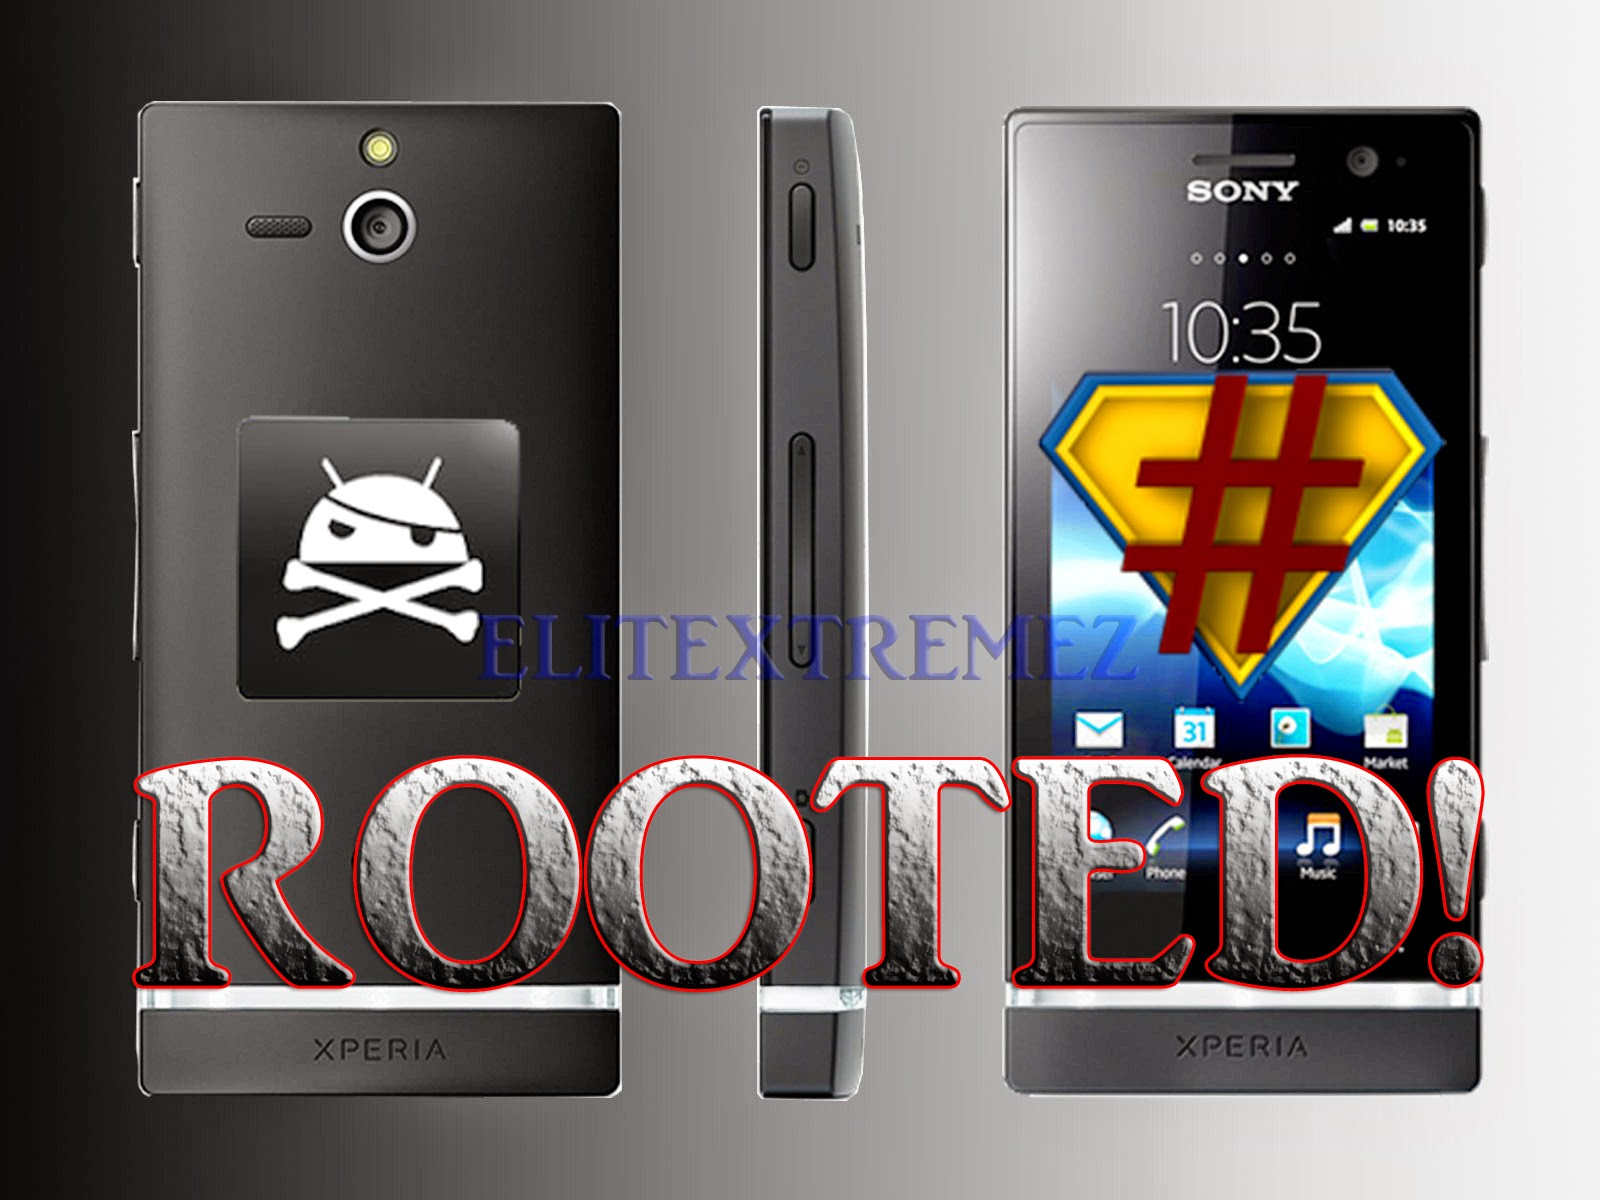 How to Root Sony Xperia U